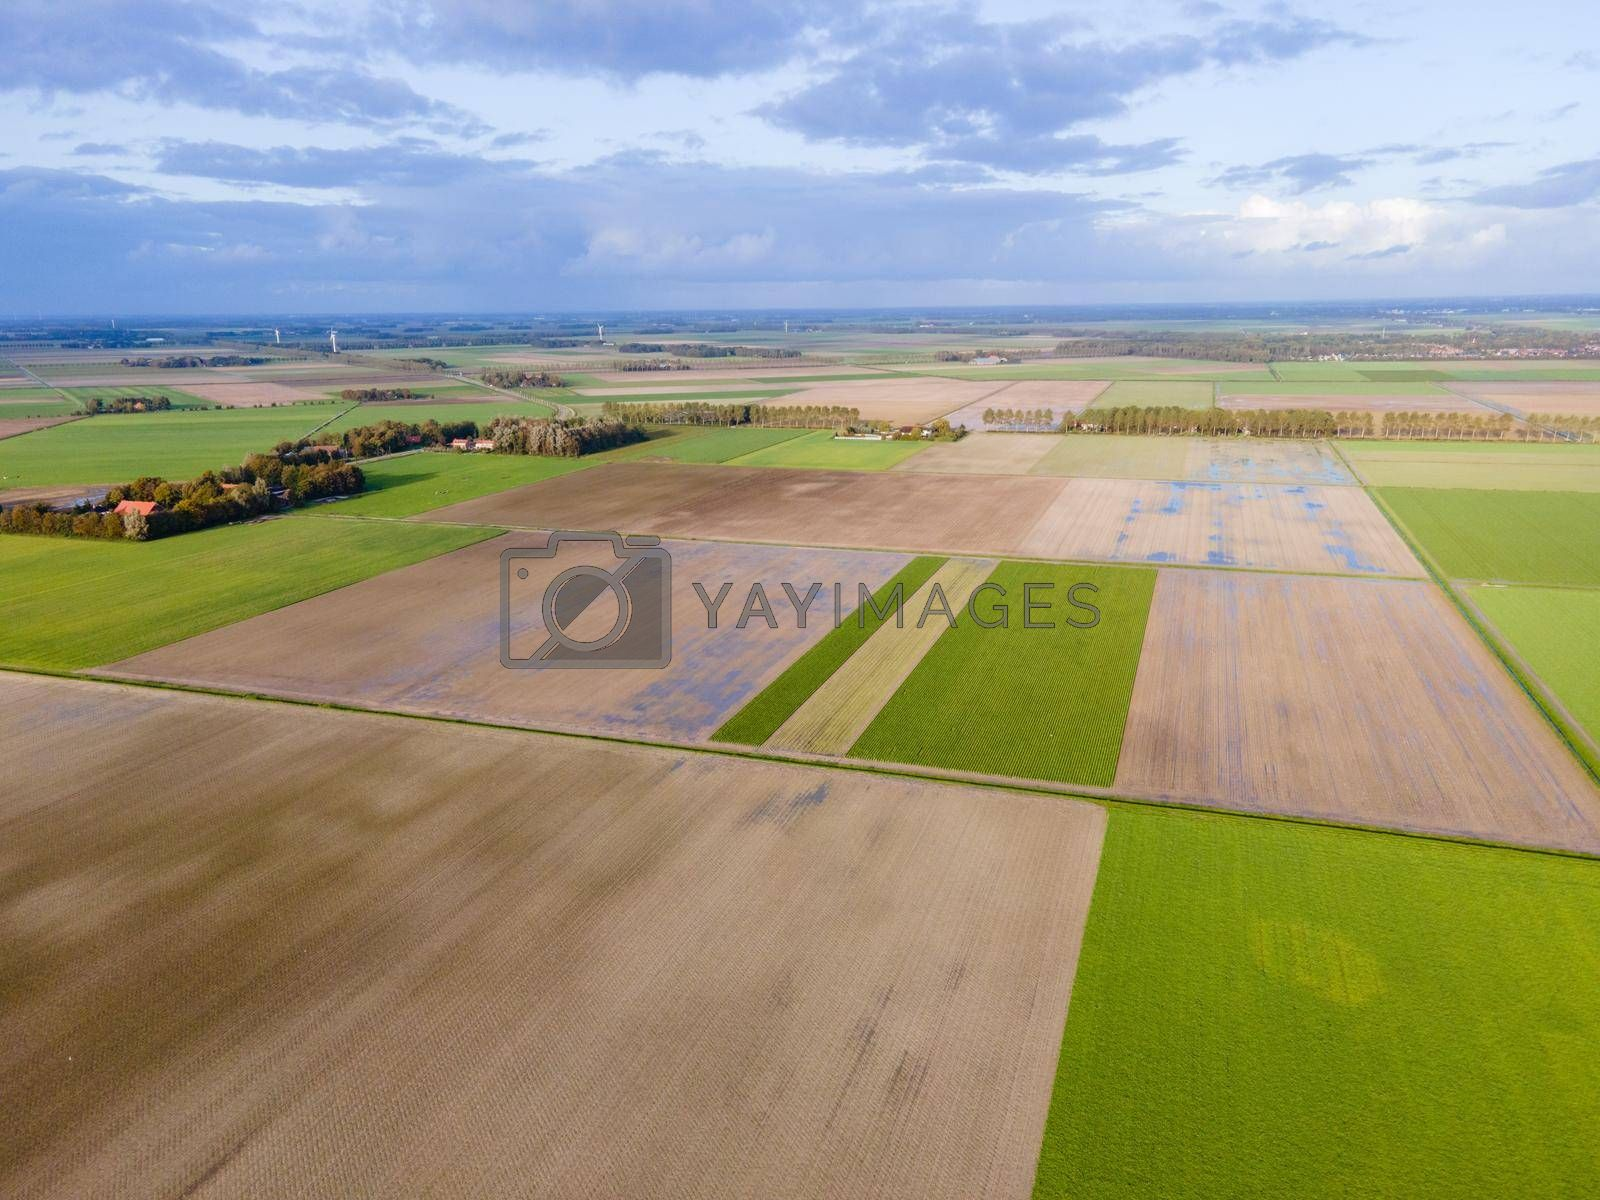 clean green meadows in the Netherlands, Aerial drone view of green fields and farm houses near canal from above, typical Dutch landscape, Holland, Netherlands. High quality photo with drone